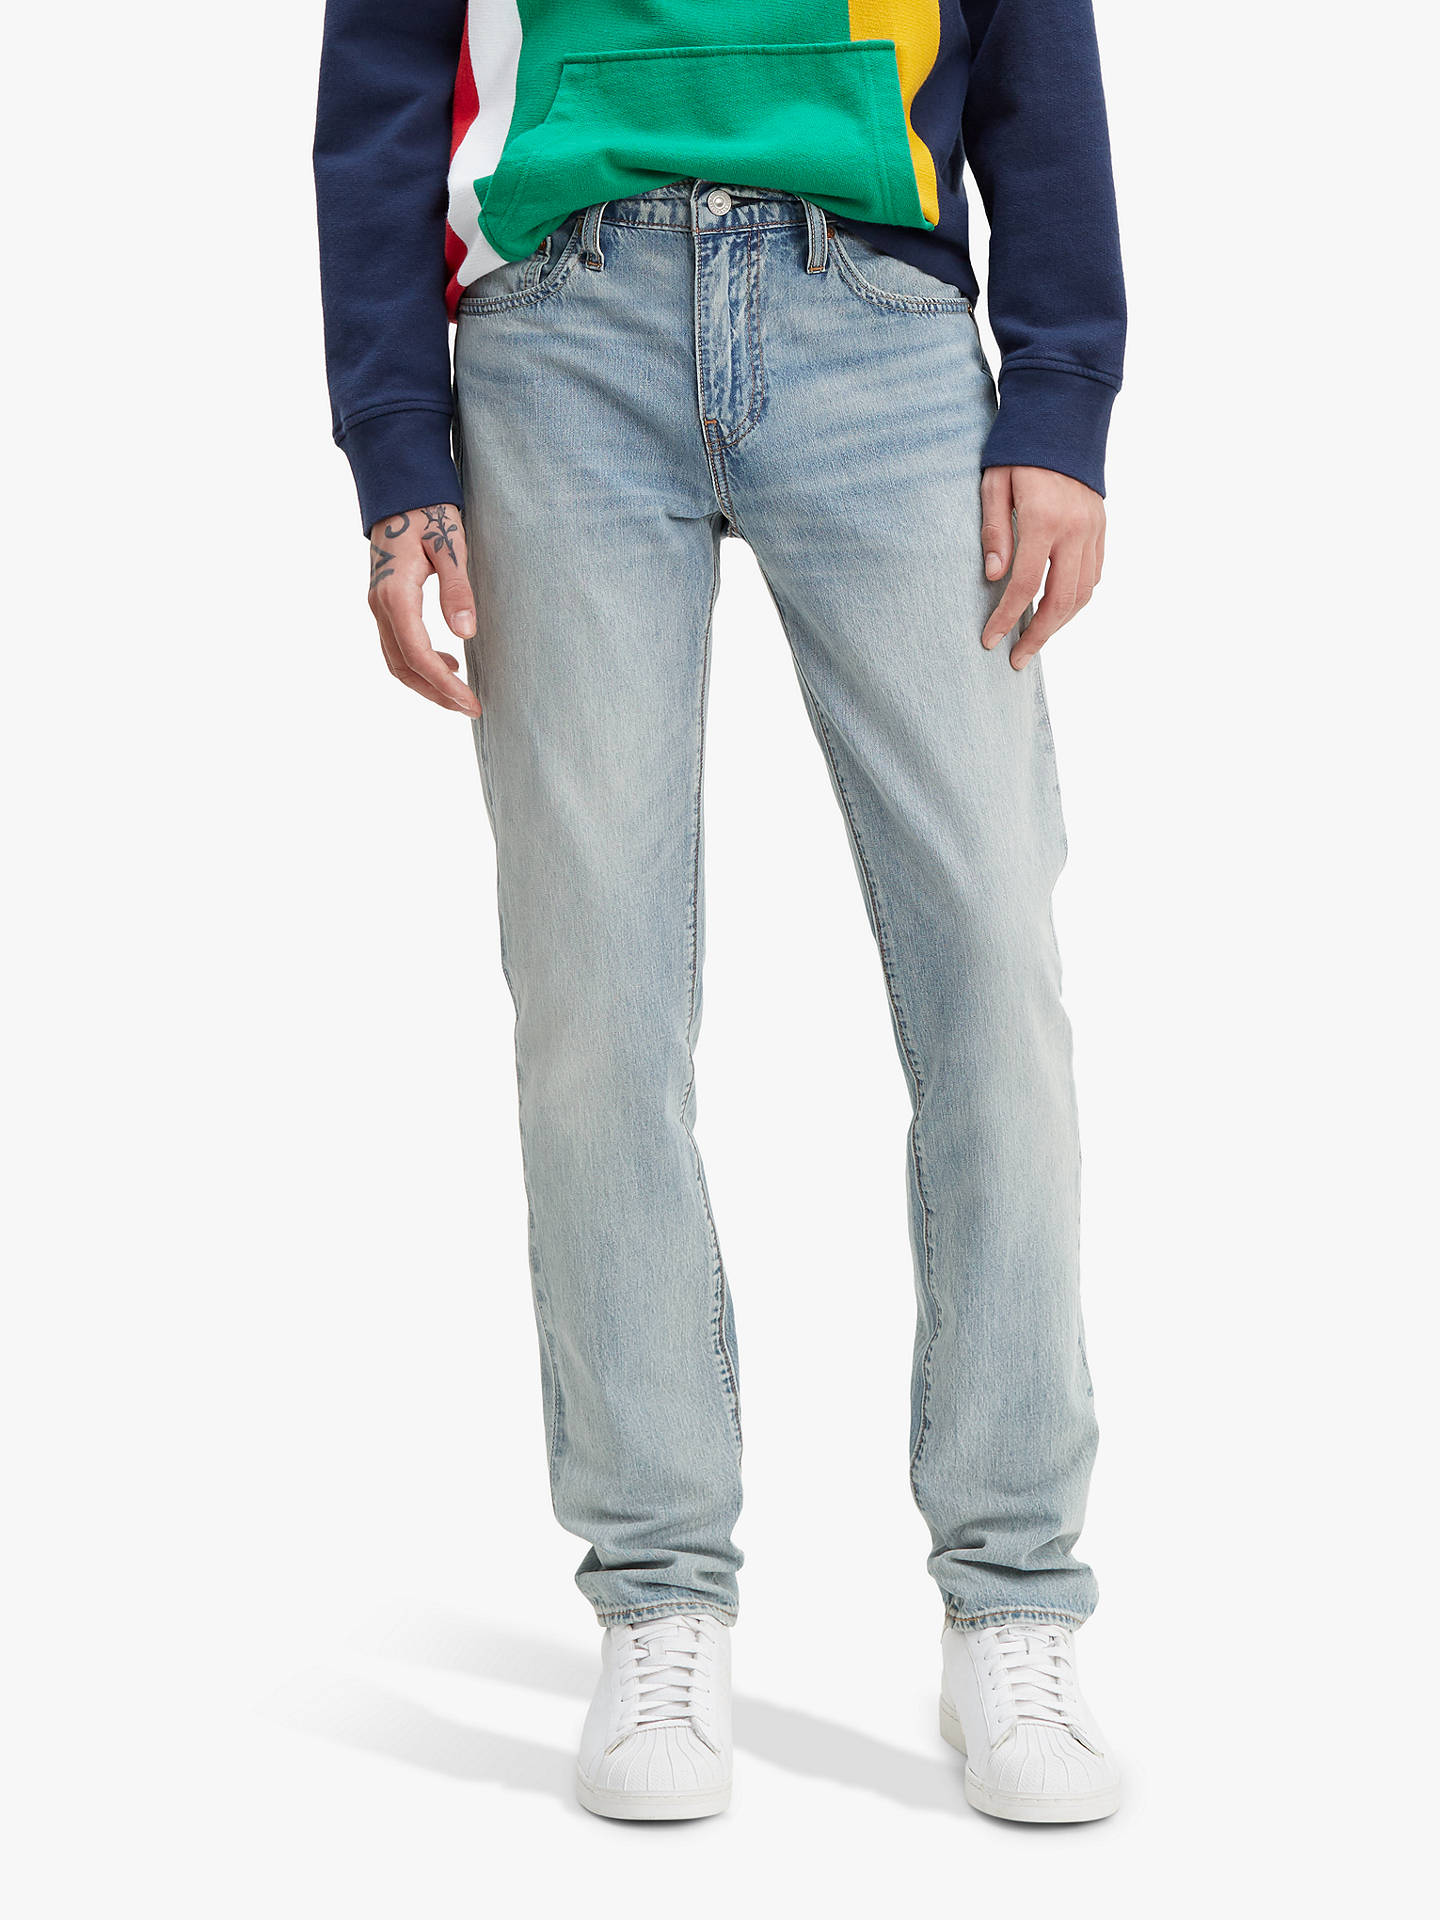 a7983578 Buy Levi's 511 Slim Fit Stretch Cool Jeans, Great White, 32S Online at  johnlewis ...